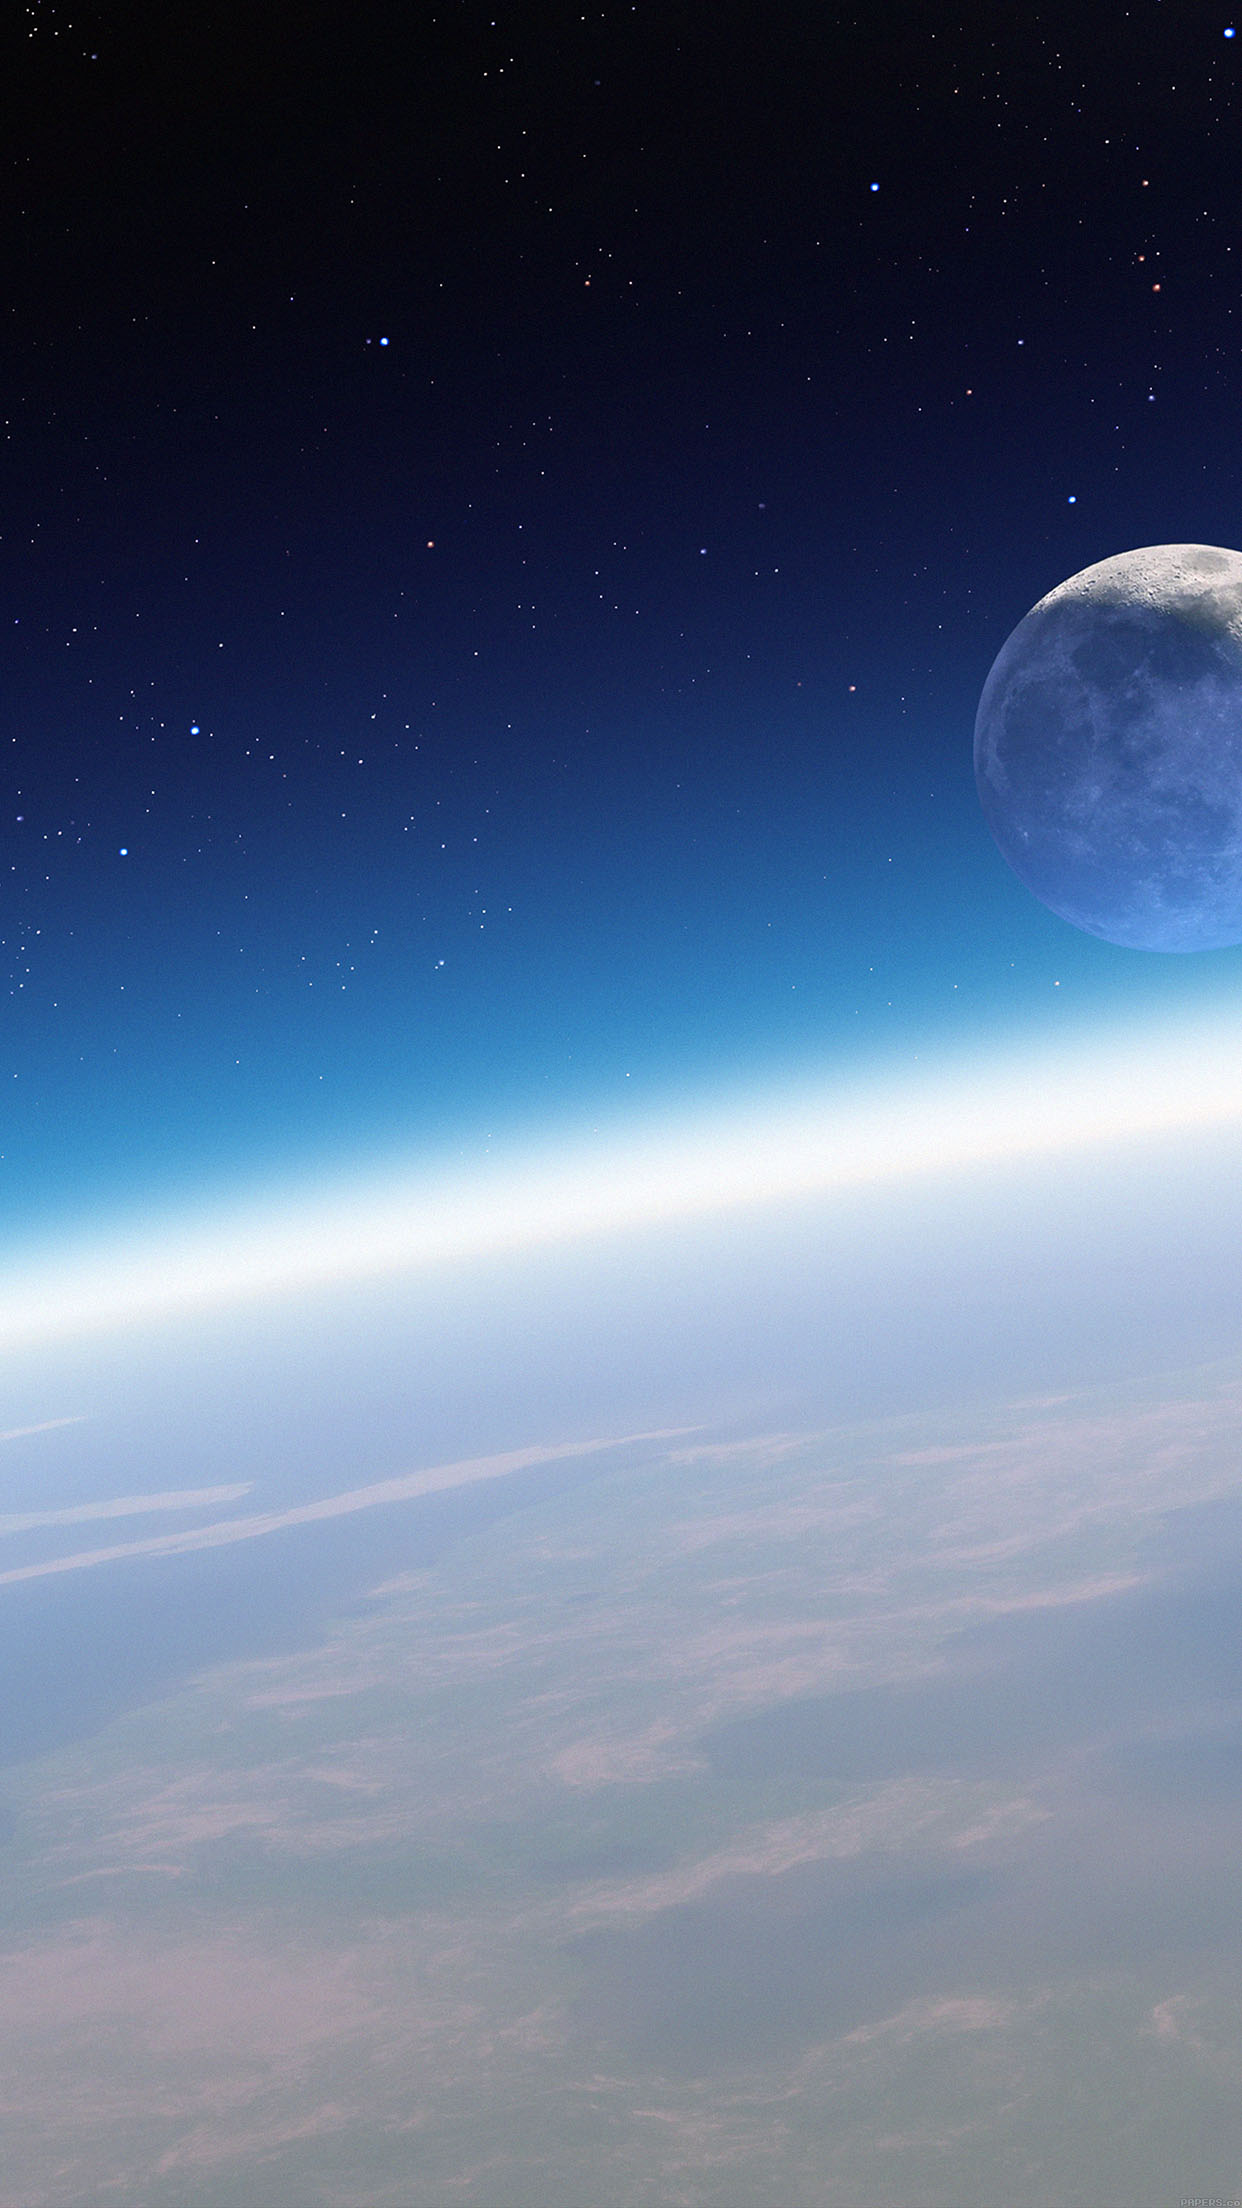 Earth Horizon In Space Smartphone Wallpaper